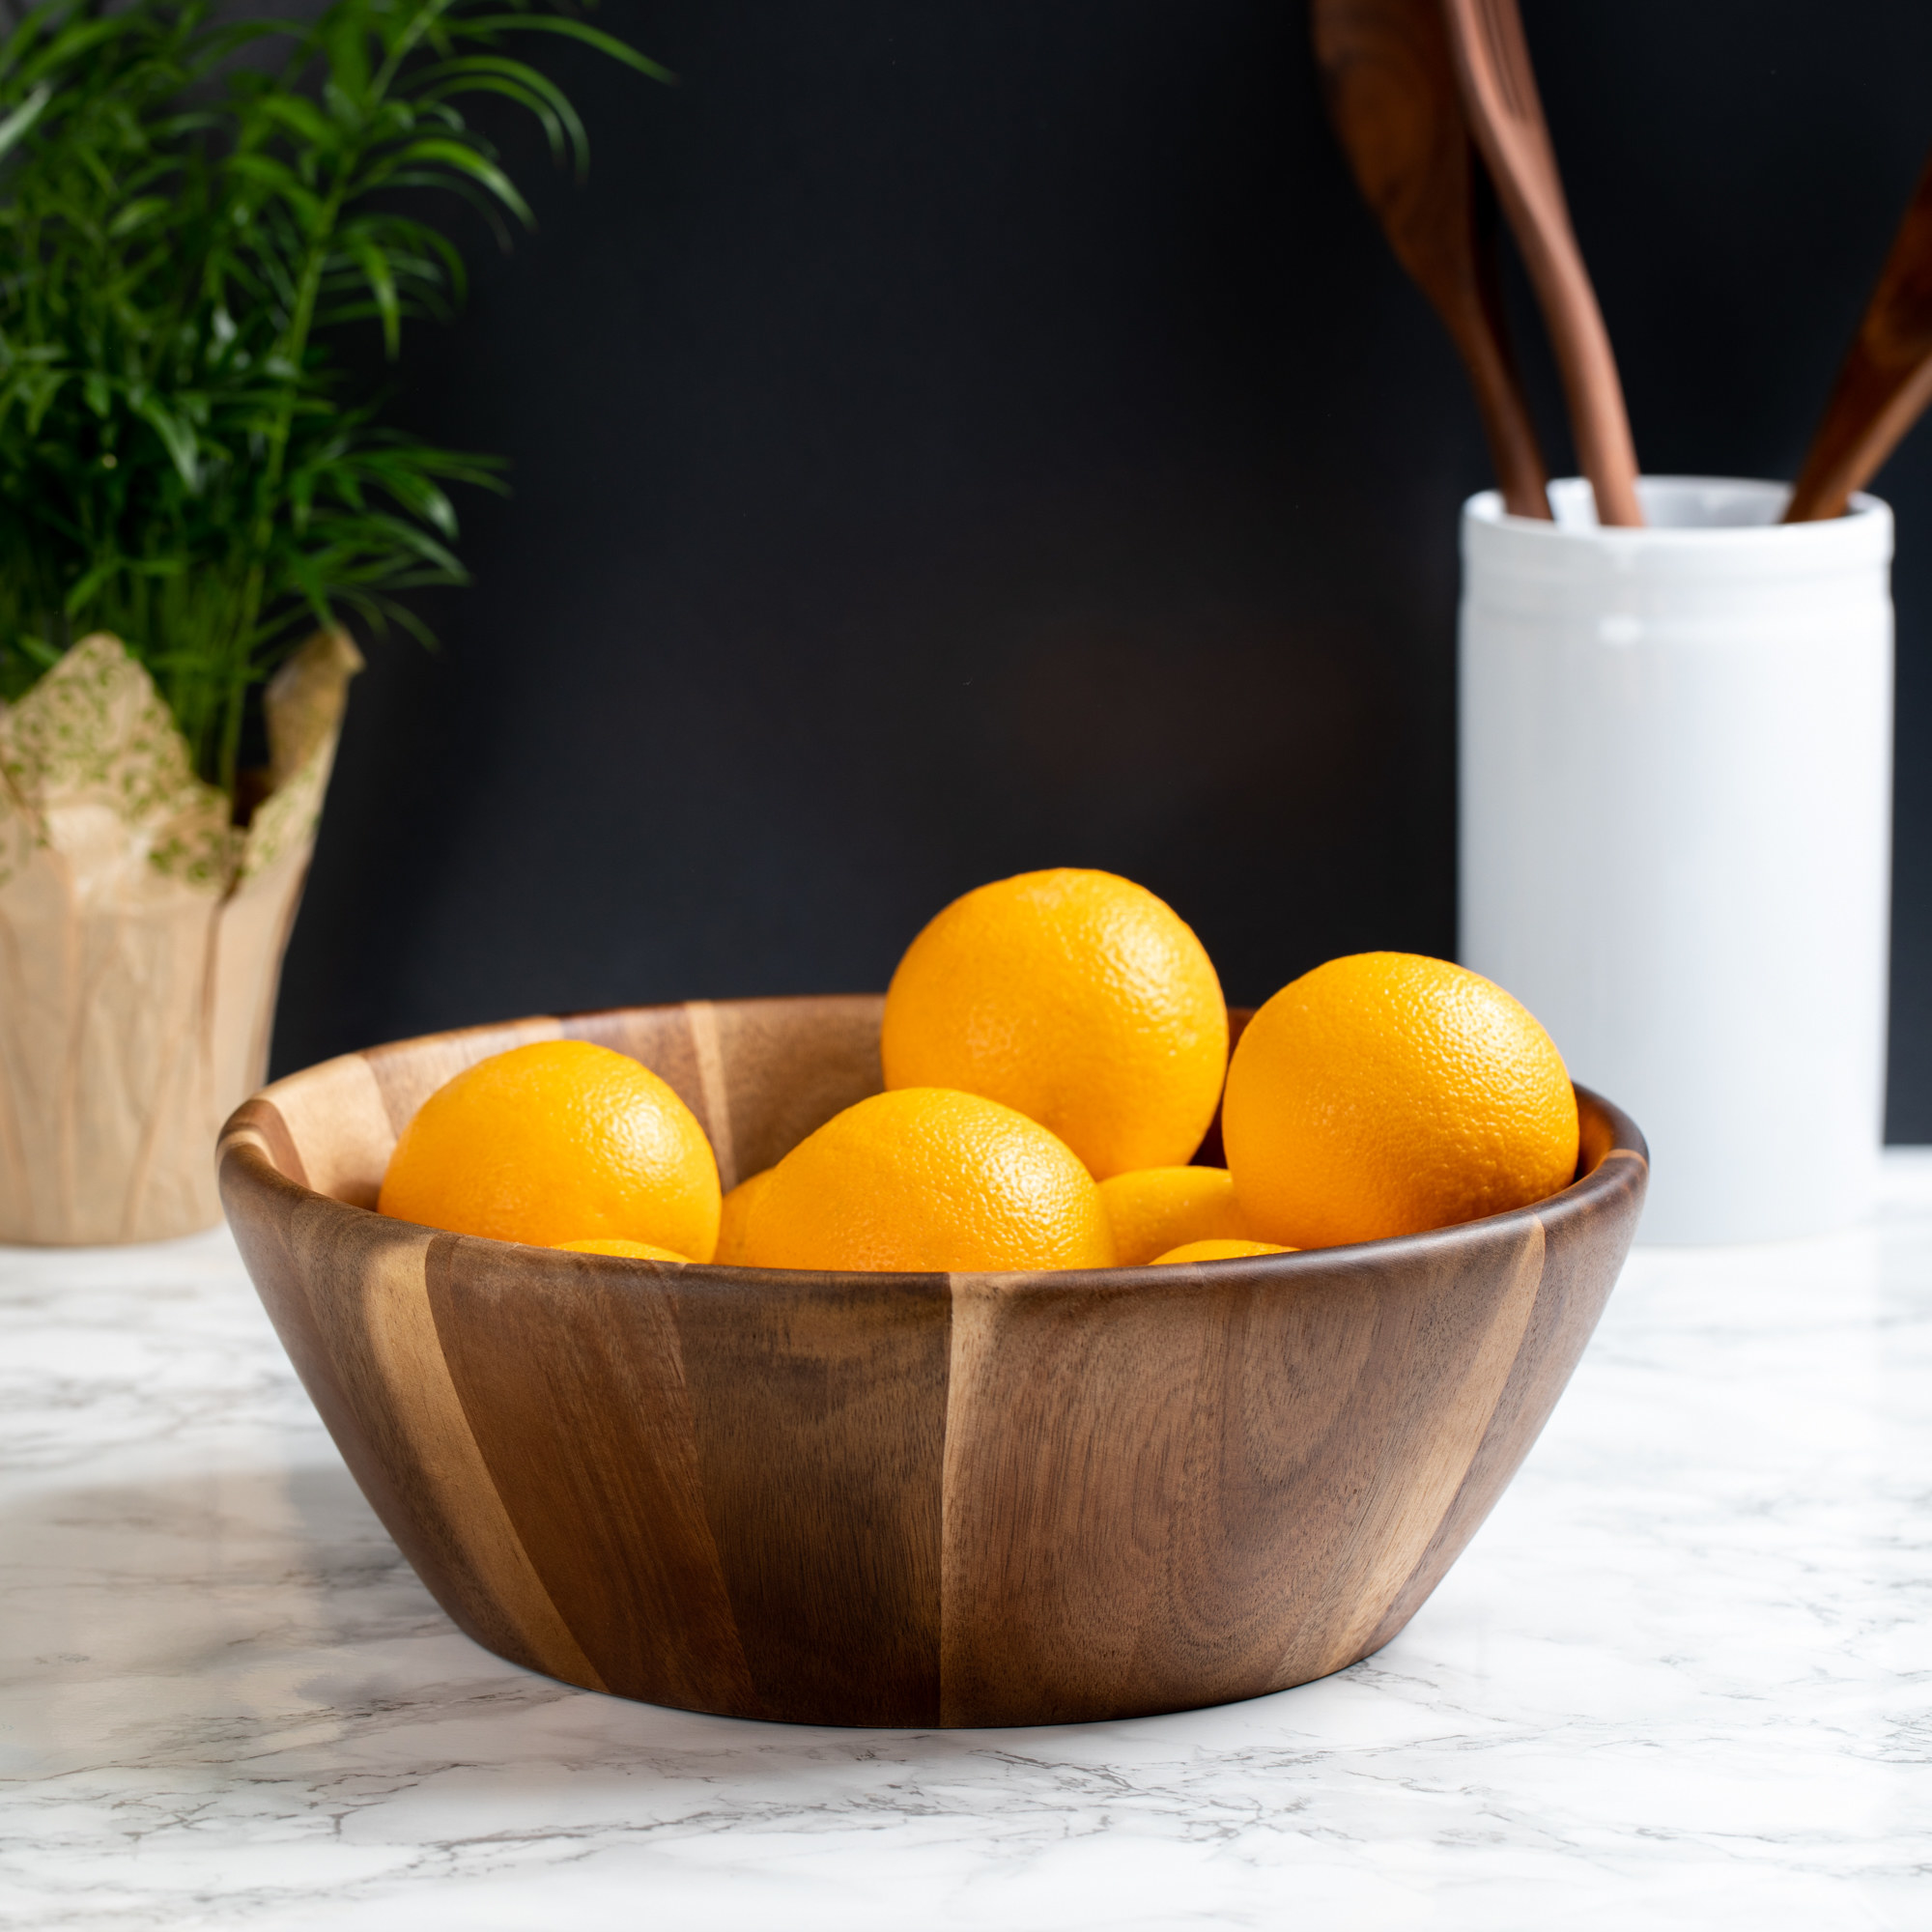 wood bowl on a table with oranges inside